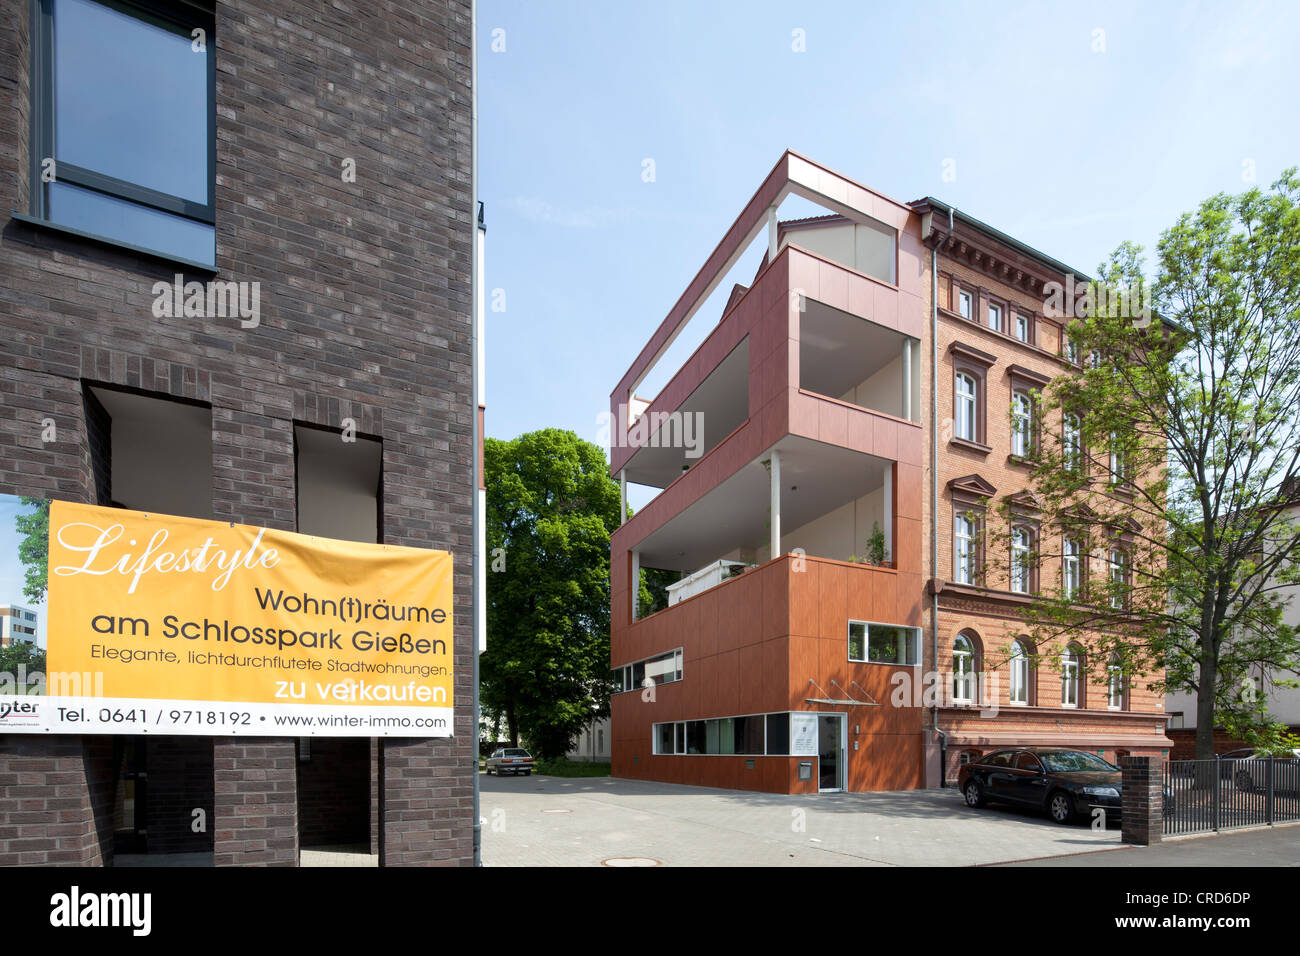 Residential building, office building, contemporary architecture, Giessen, Hesse, Germany, Europe, PublicGround - Stock Image